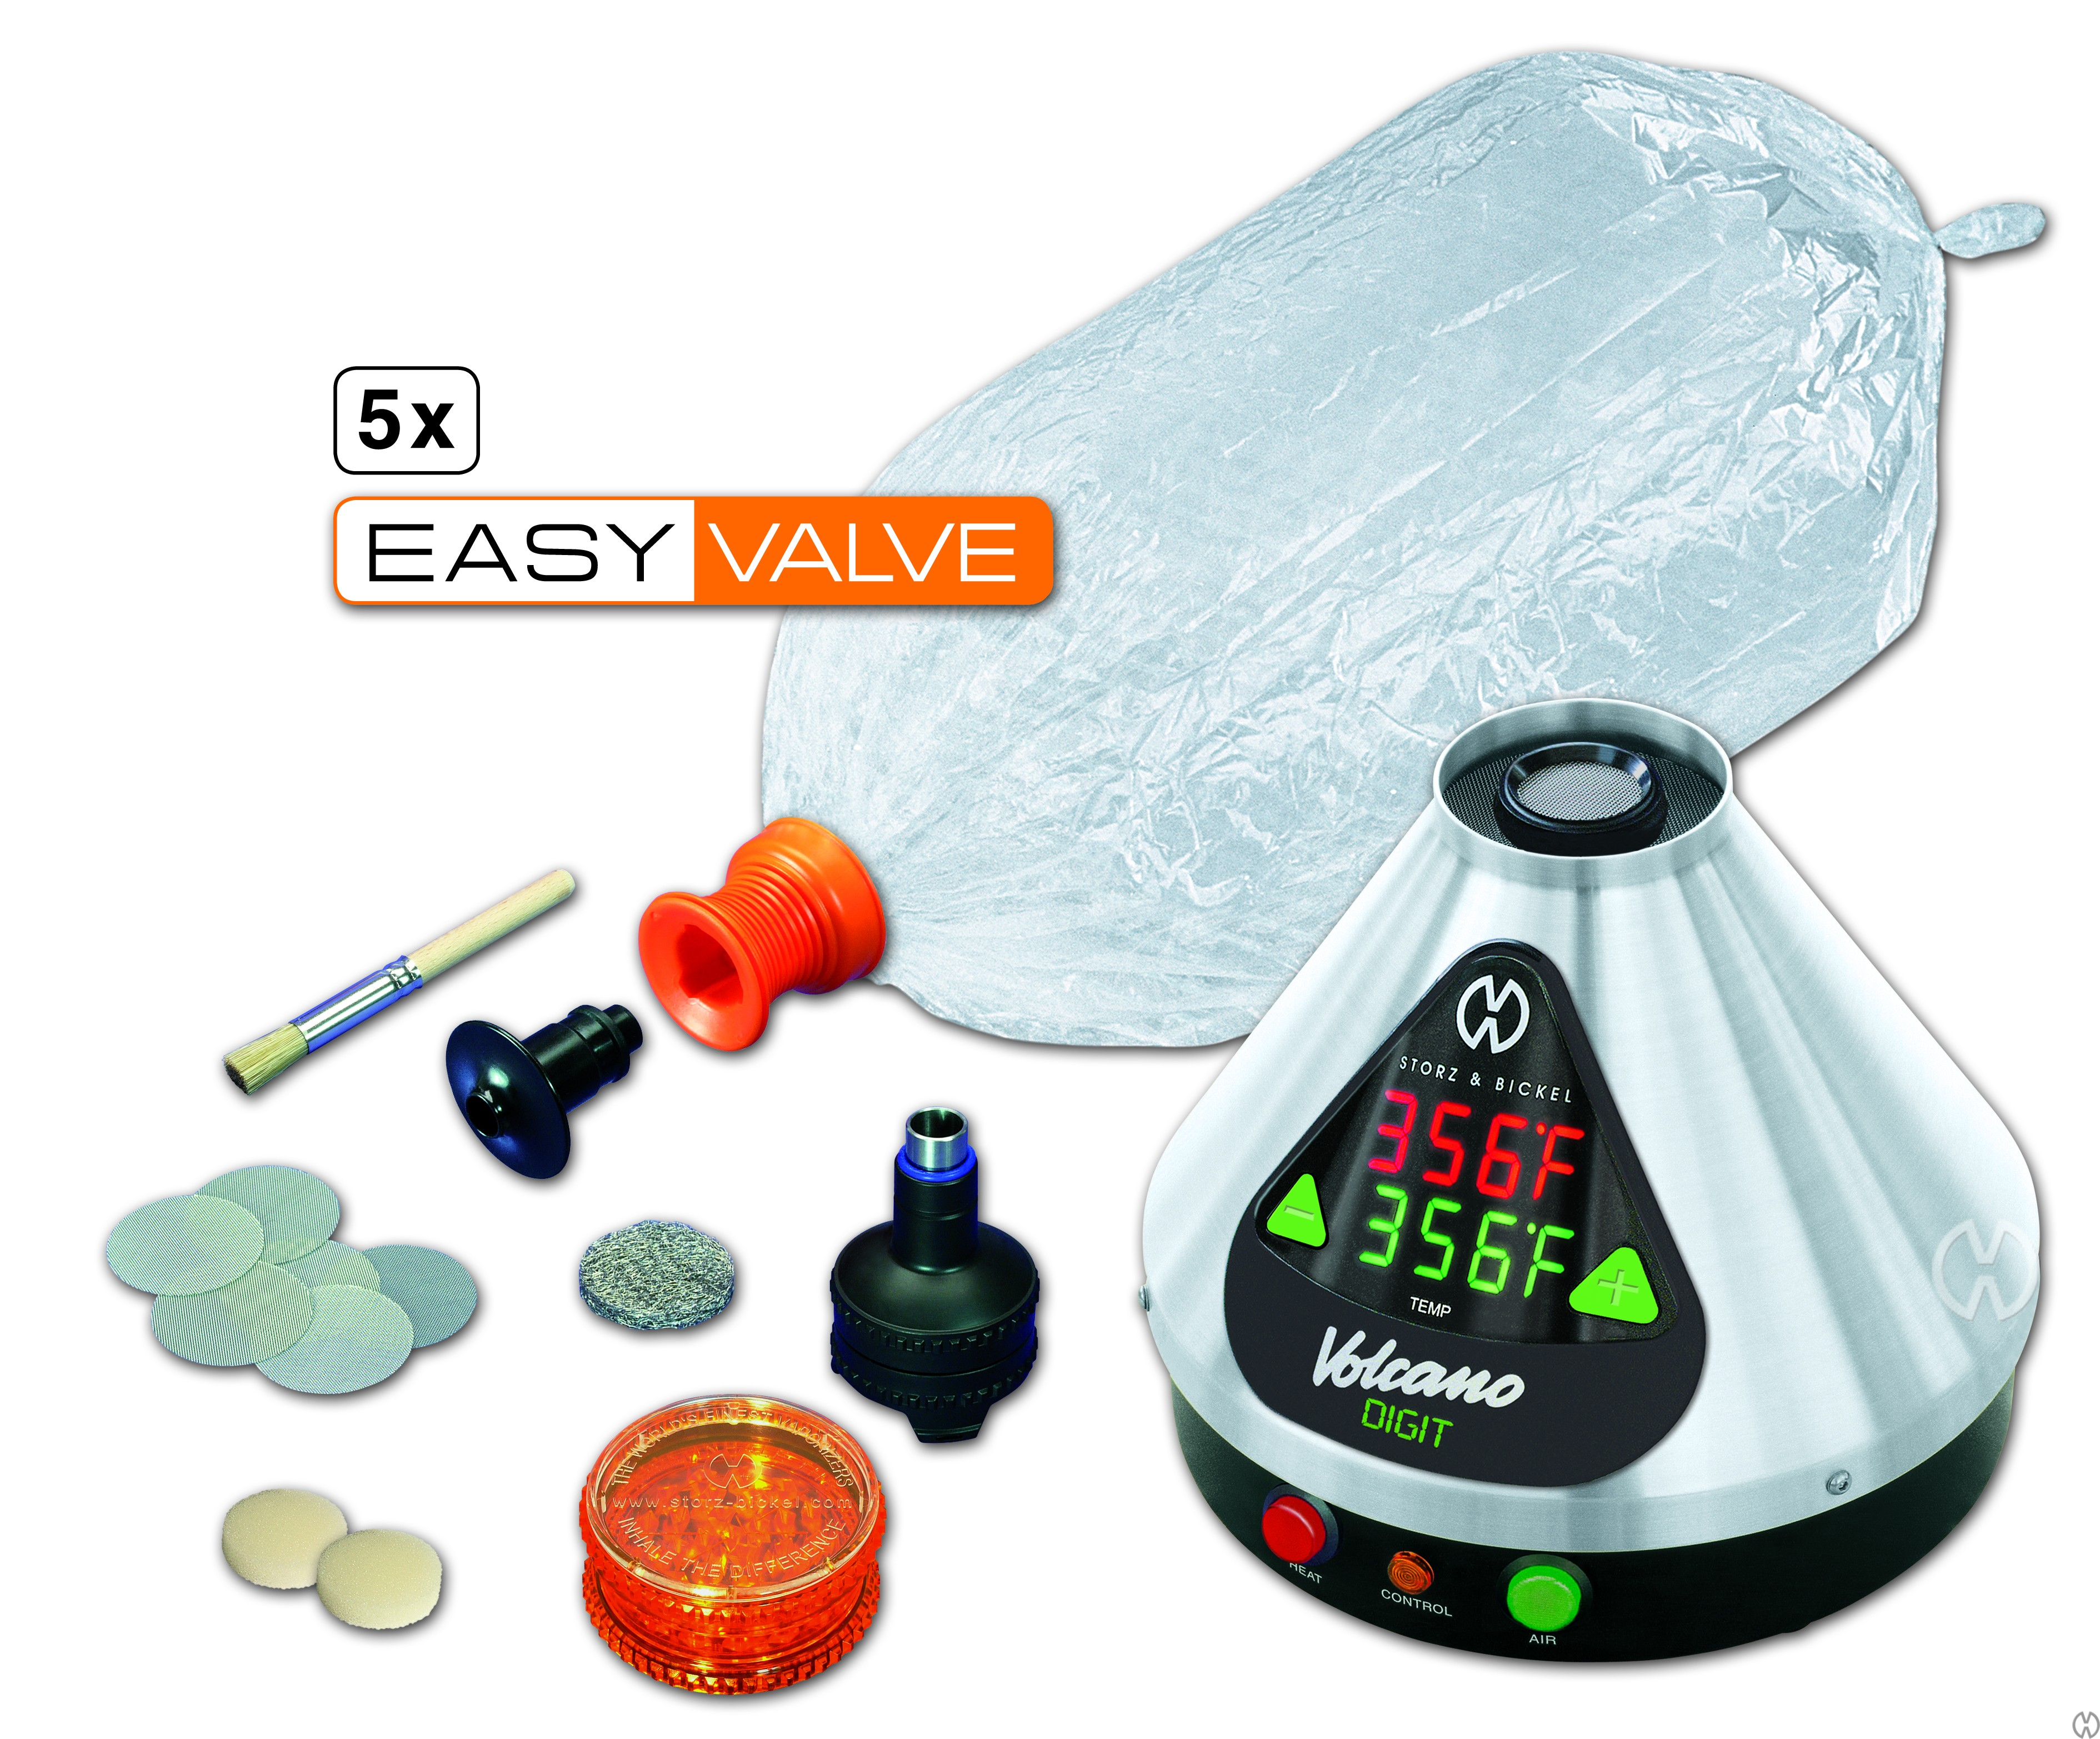 Vaporizer Volcano Digit Easy Valve set